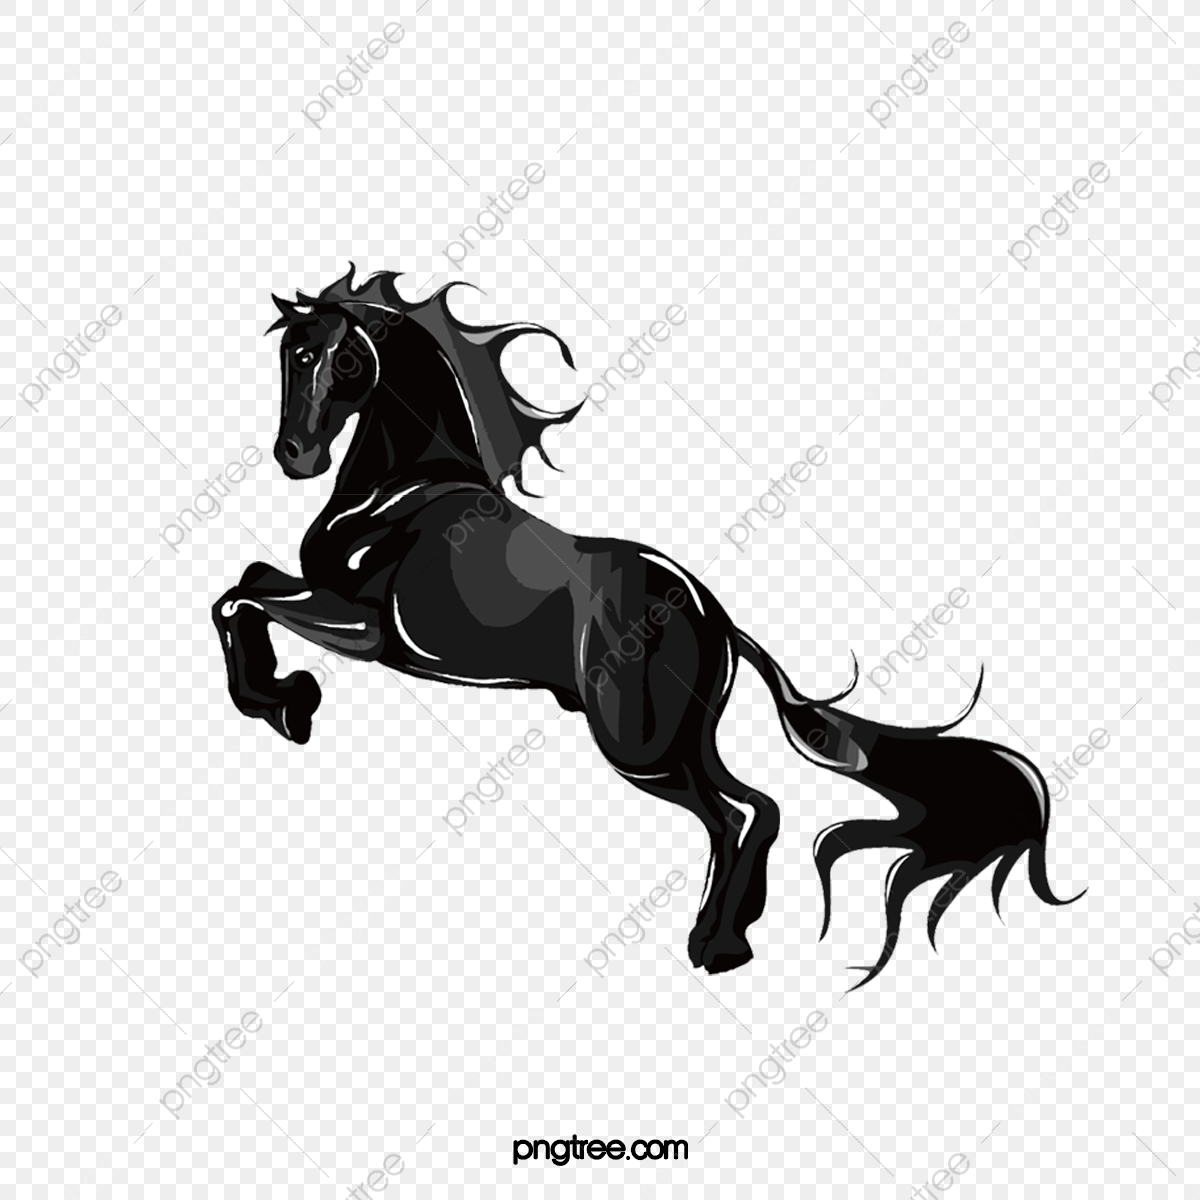 Dark Horse Png Images Vector And Psd Files Free Download On Pngtree